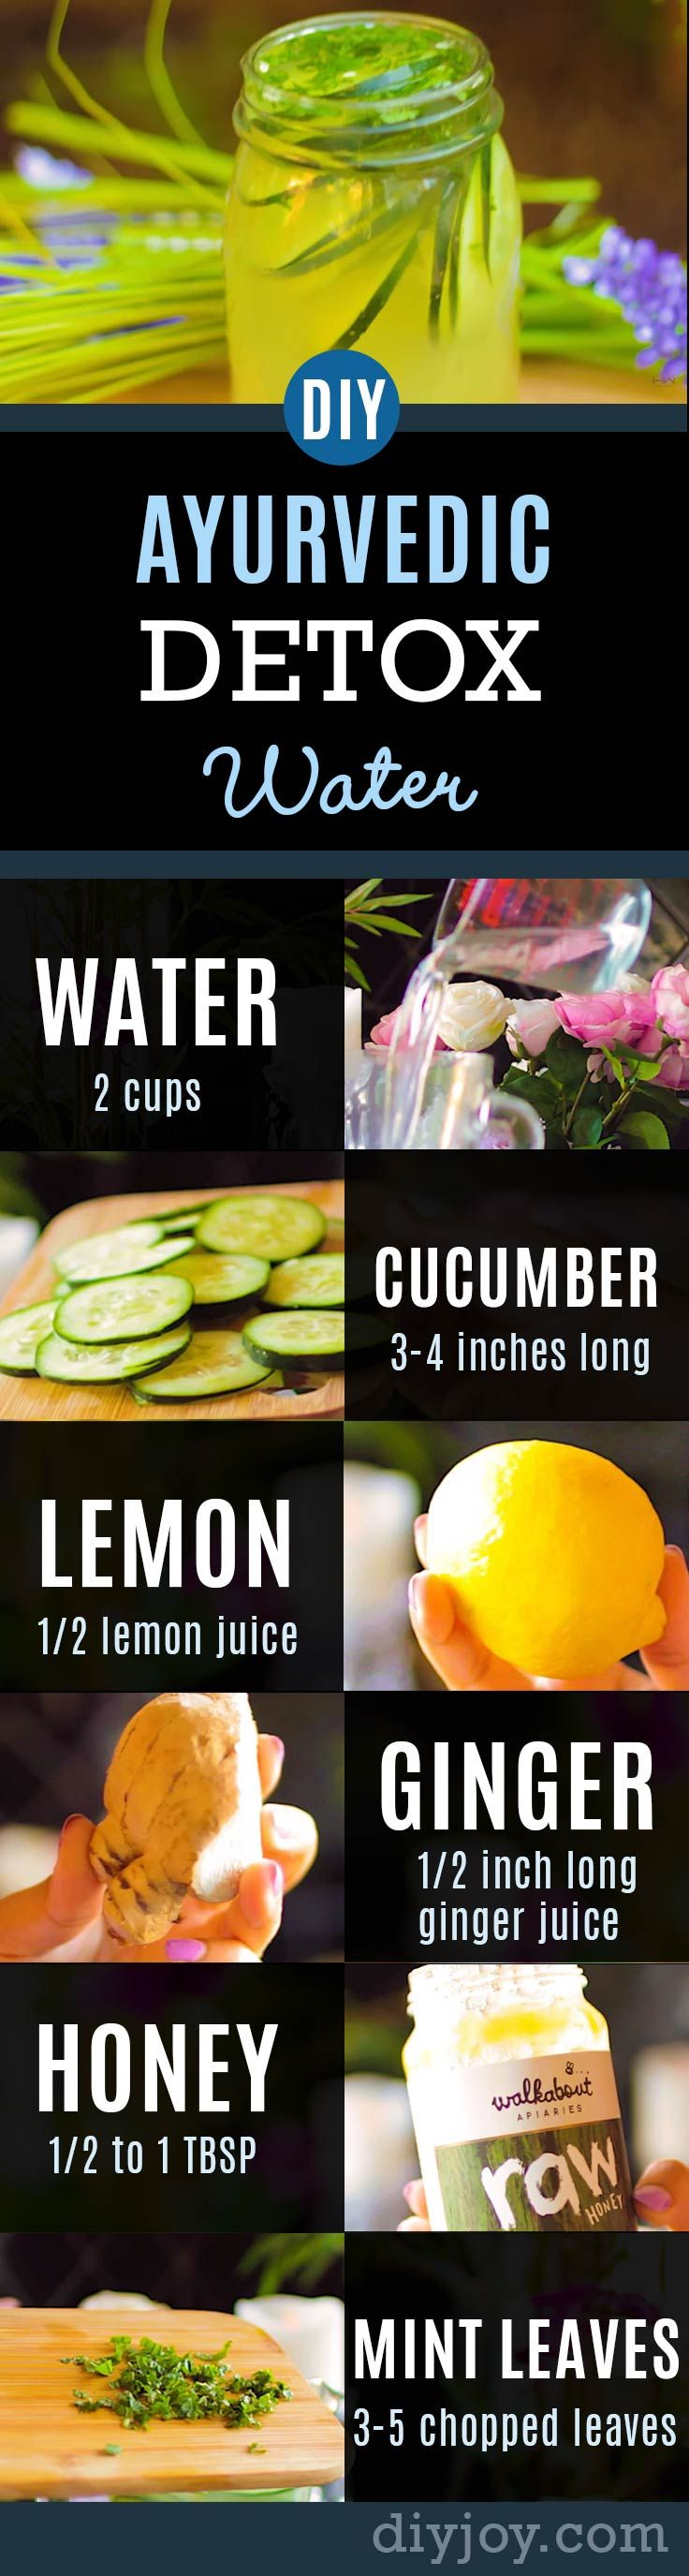 Ayurvedic Detox Water Recipe Promotes Healthy Body, Clear Skin, Weight Loss and Flat Belly, Anti-Aging | Healthy Recipes by DIY Joy Crafts diyjoy.com/...